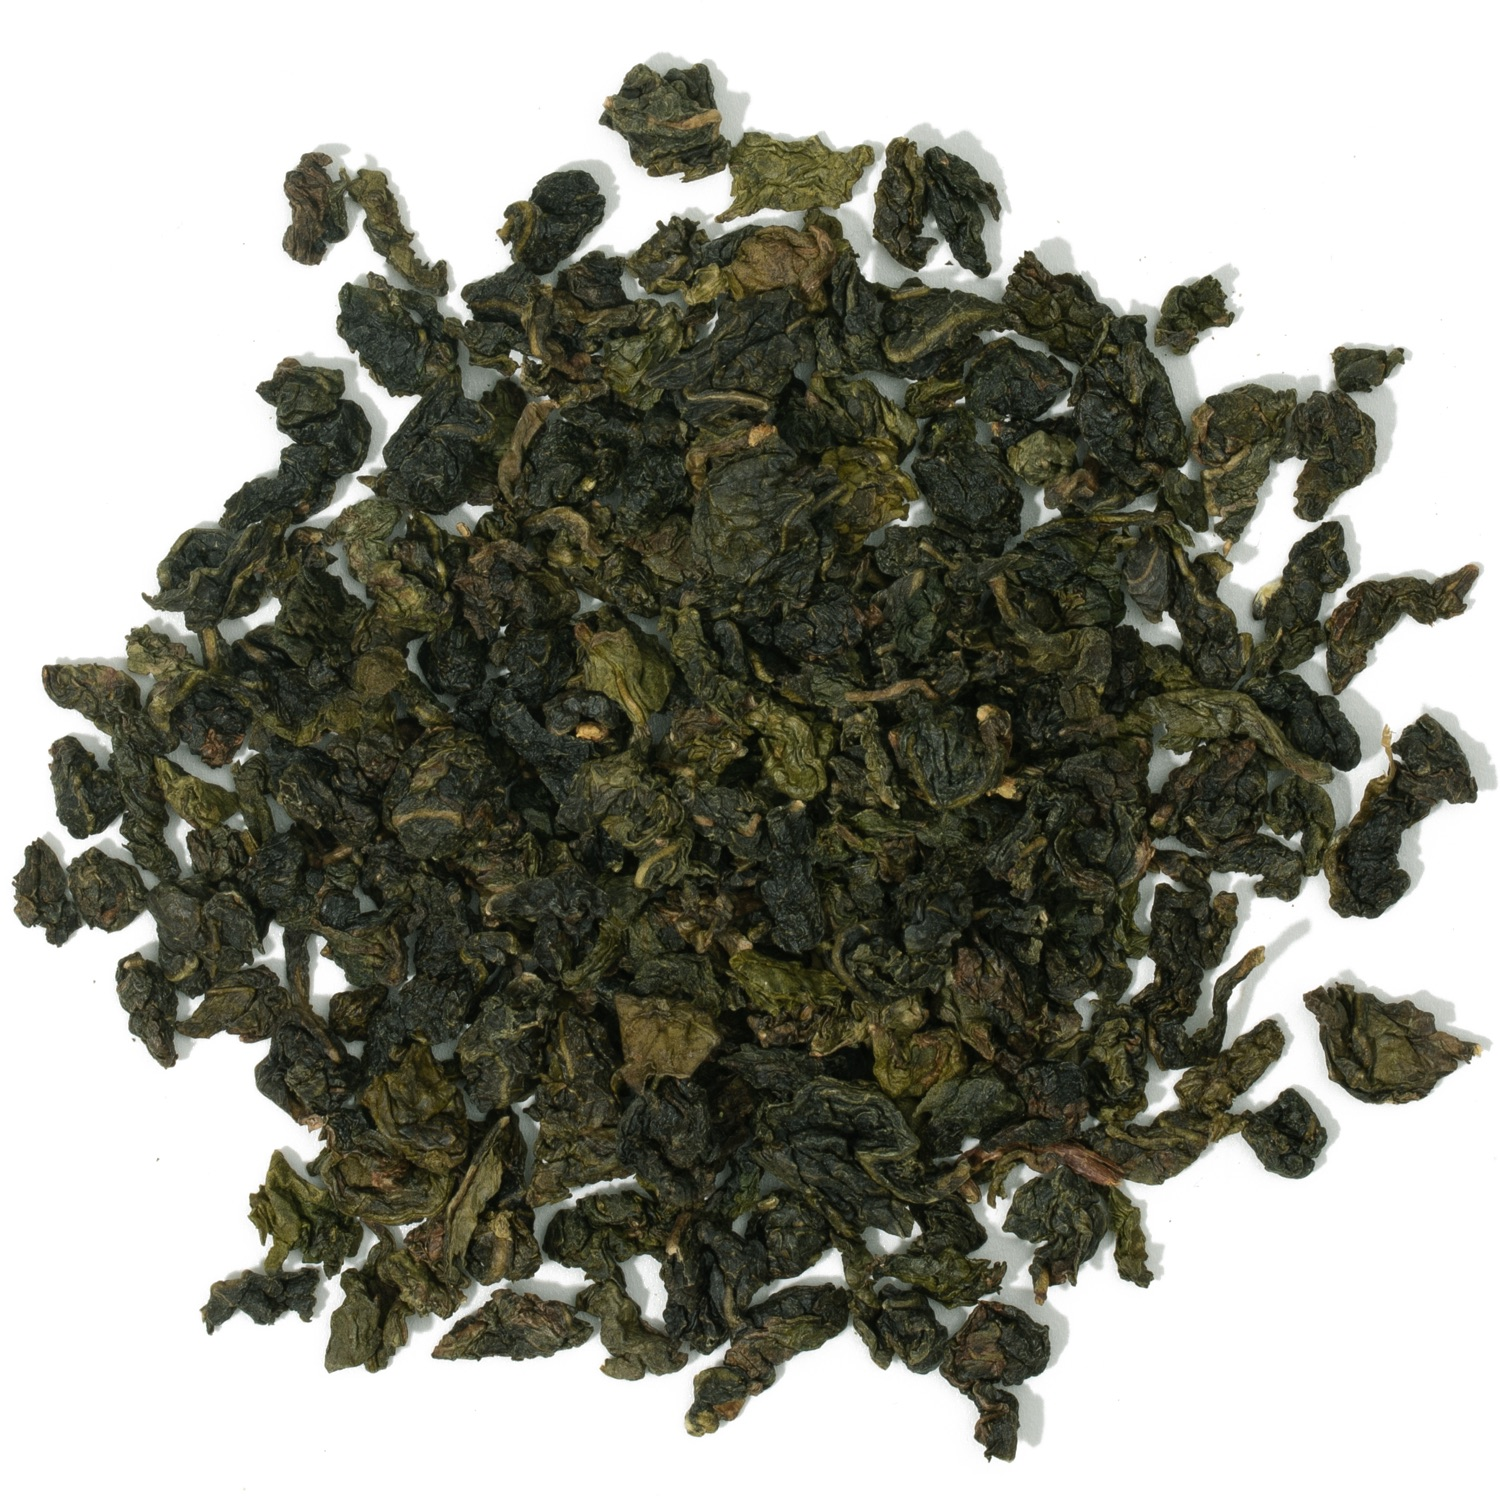 Splash of loose leaf oolong tea.